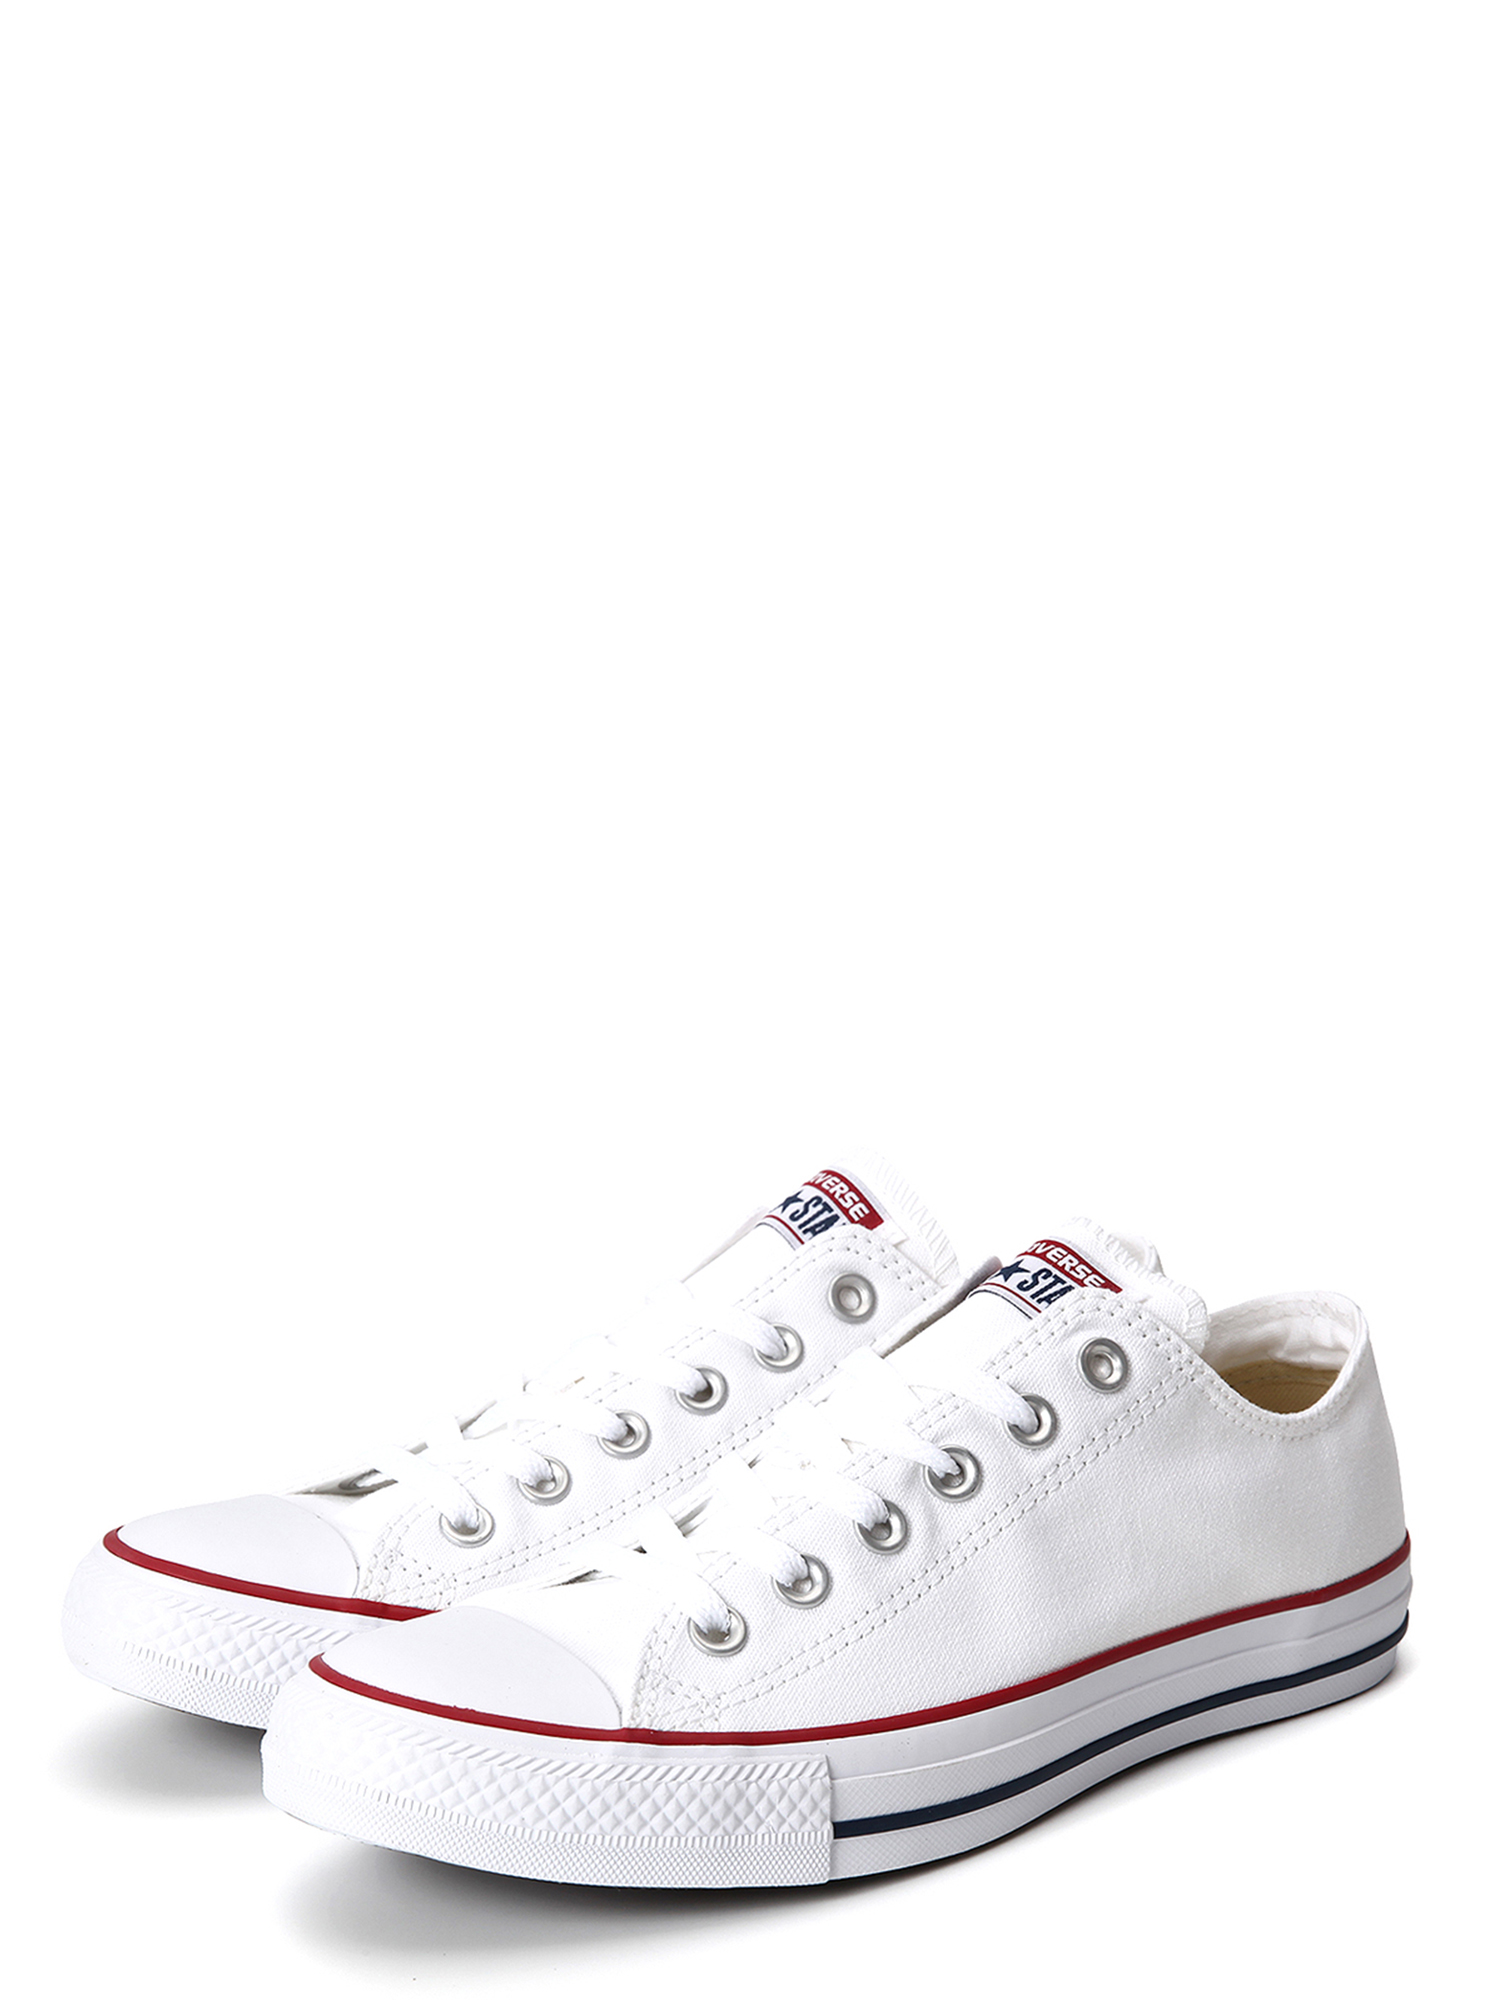 Converse All Star Oxford Sneakers M7652 Optical White by